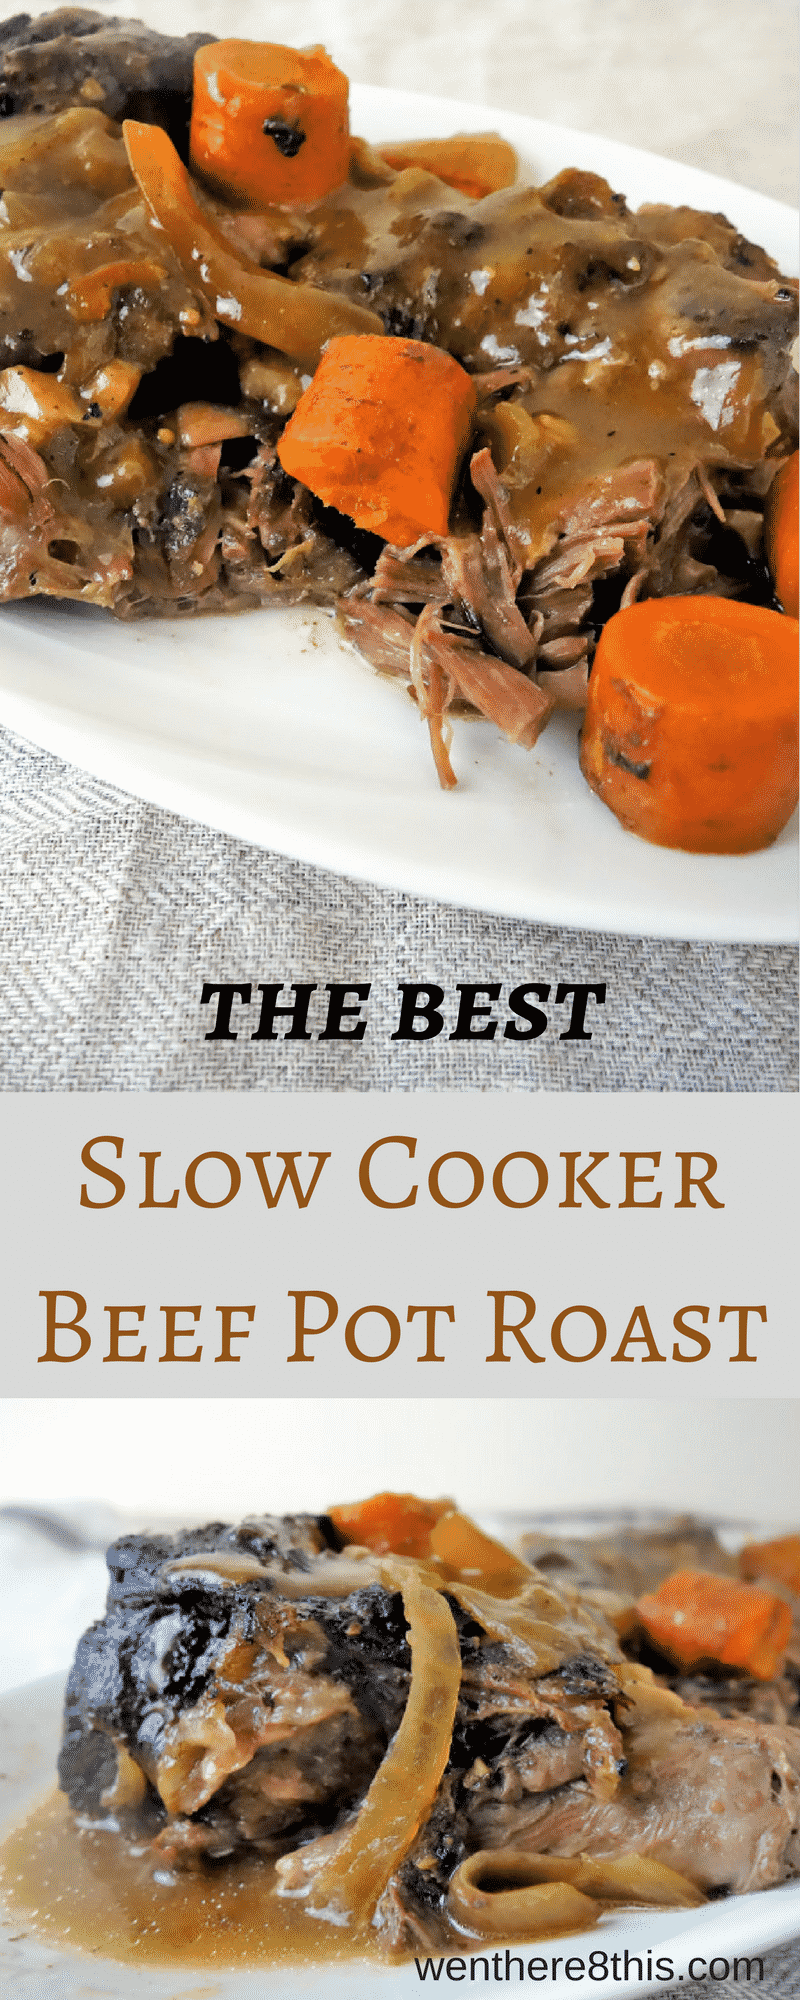 Learn how to make the best slow cooker beef pot roast - it's so incredibly easy, especially after a long hard day at work when you don't feel like cooking!beef pot roast recipe, slow cooker recipes, easy slow cooker beef, pot roast easy, pot roast recipe, beef recipes, slow cooker pot roast recipe, slow cooker pot roast easy, pot roast easy recipe, comfort food recipes, crockpot pot roast recipe, pioneer woman perfect pot roast, best pot roast recipe, fall apart pot roast